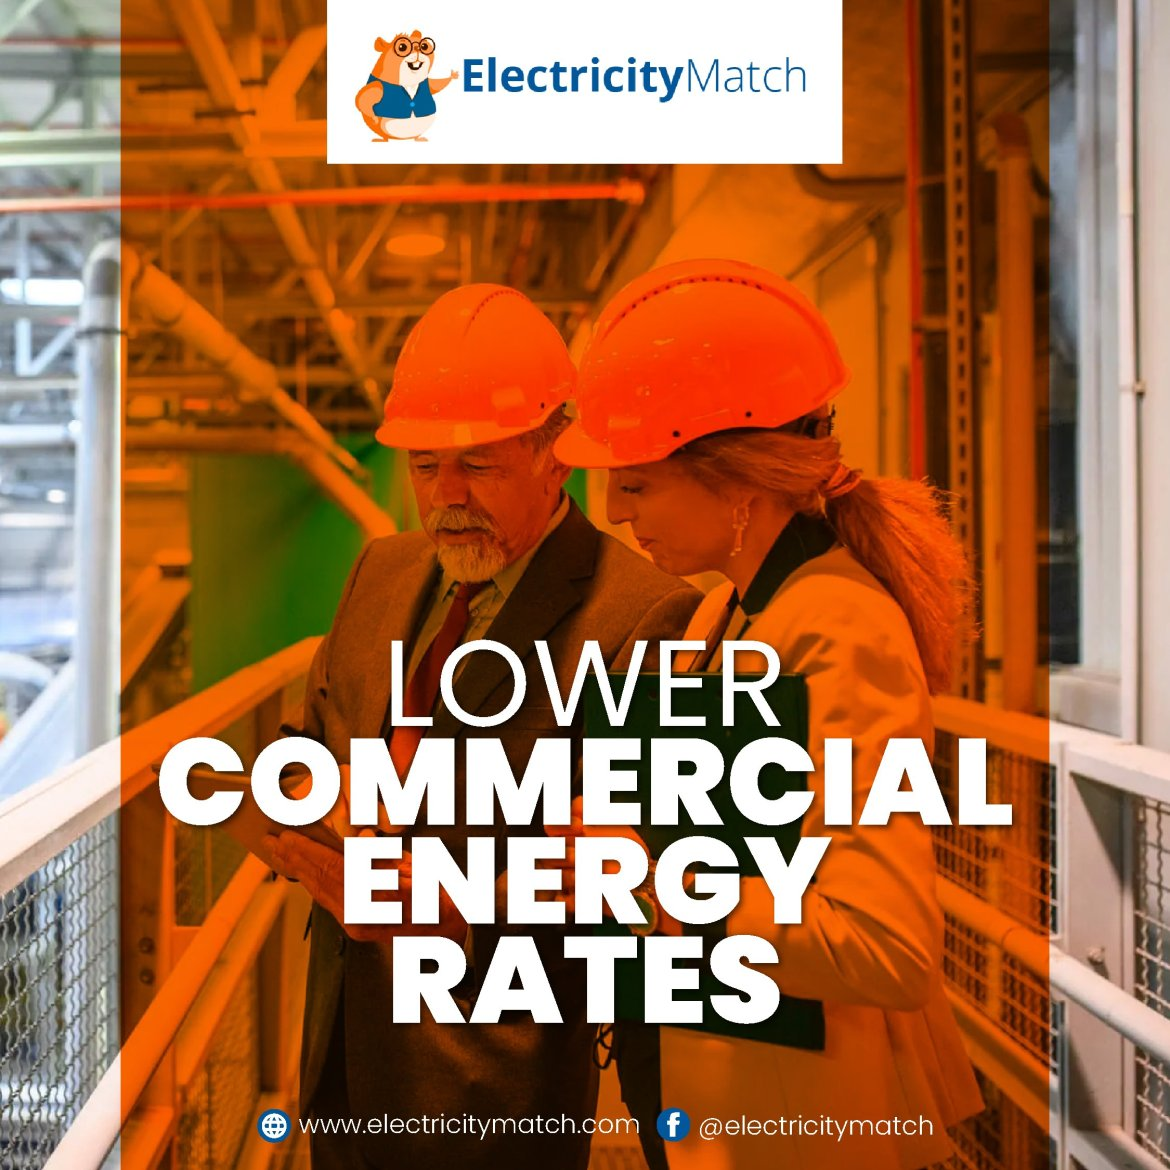 Lower Commercial Energy Rates – Square